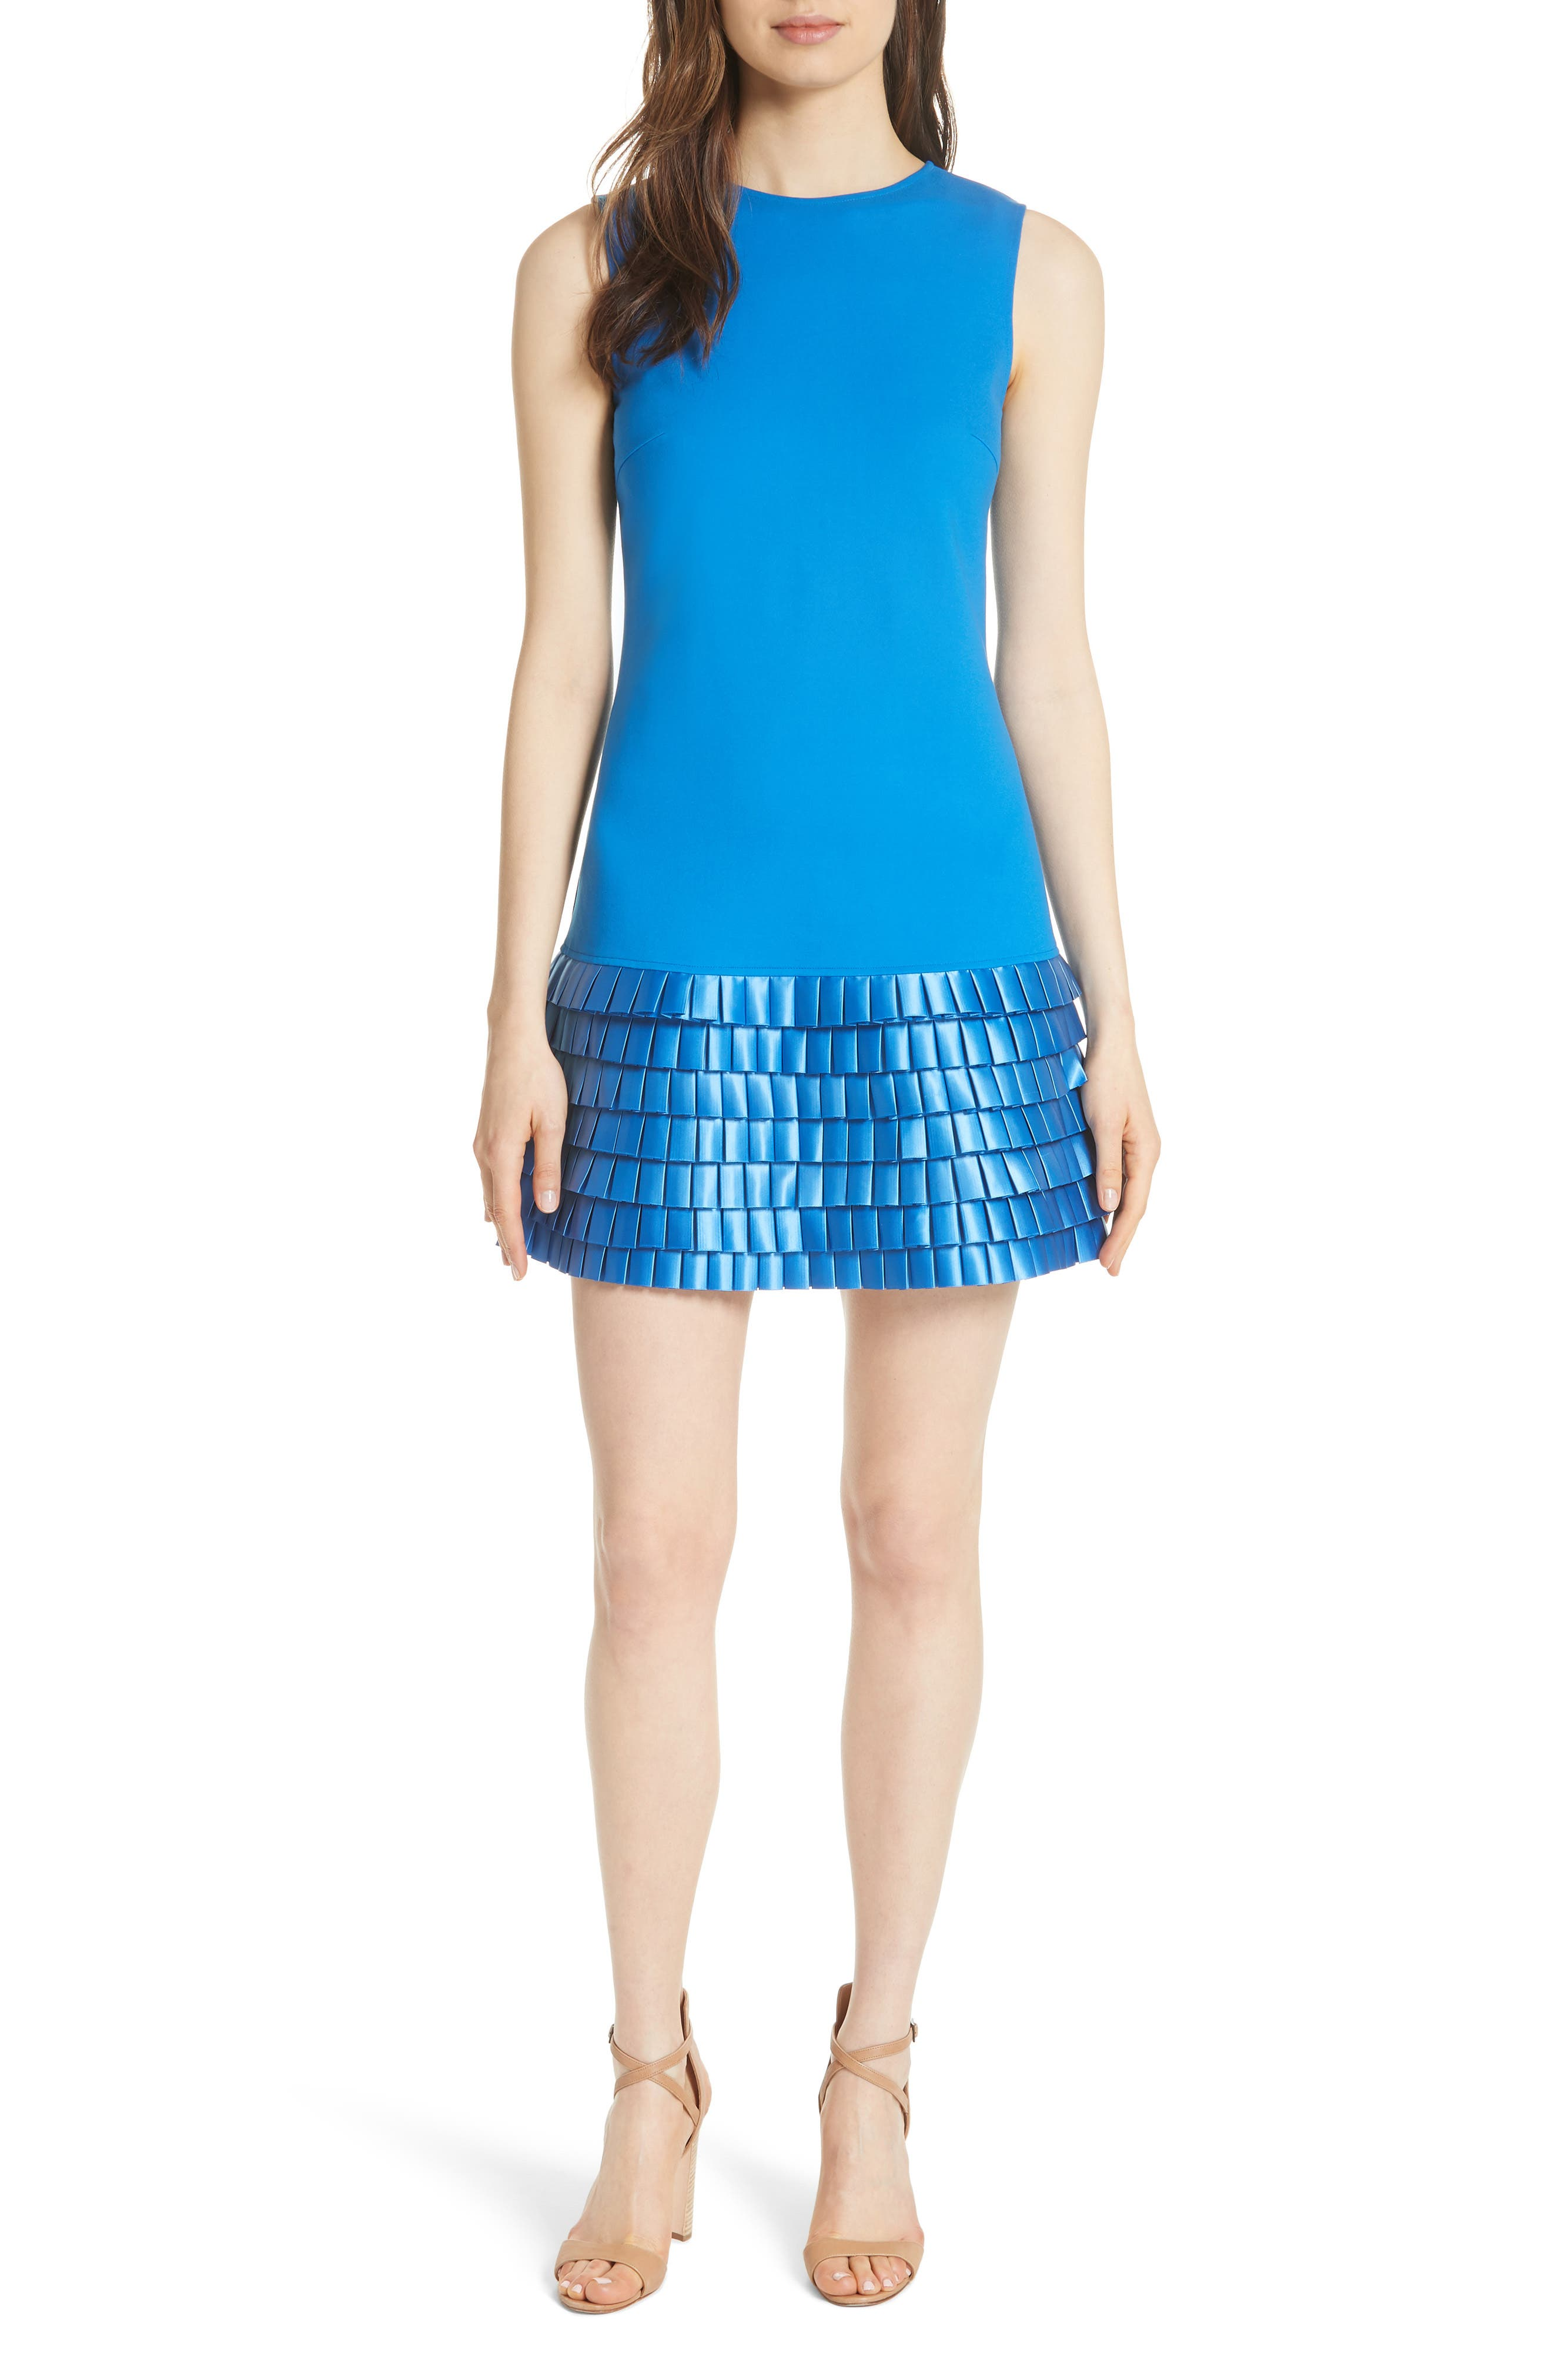 Marggia Satin Loop Detail Shift Dress,                         Main,                         color, Bright Blue